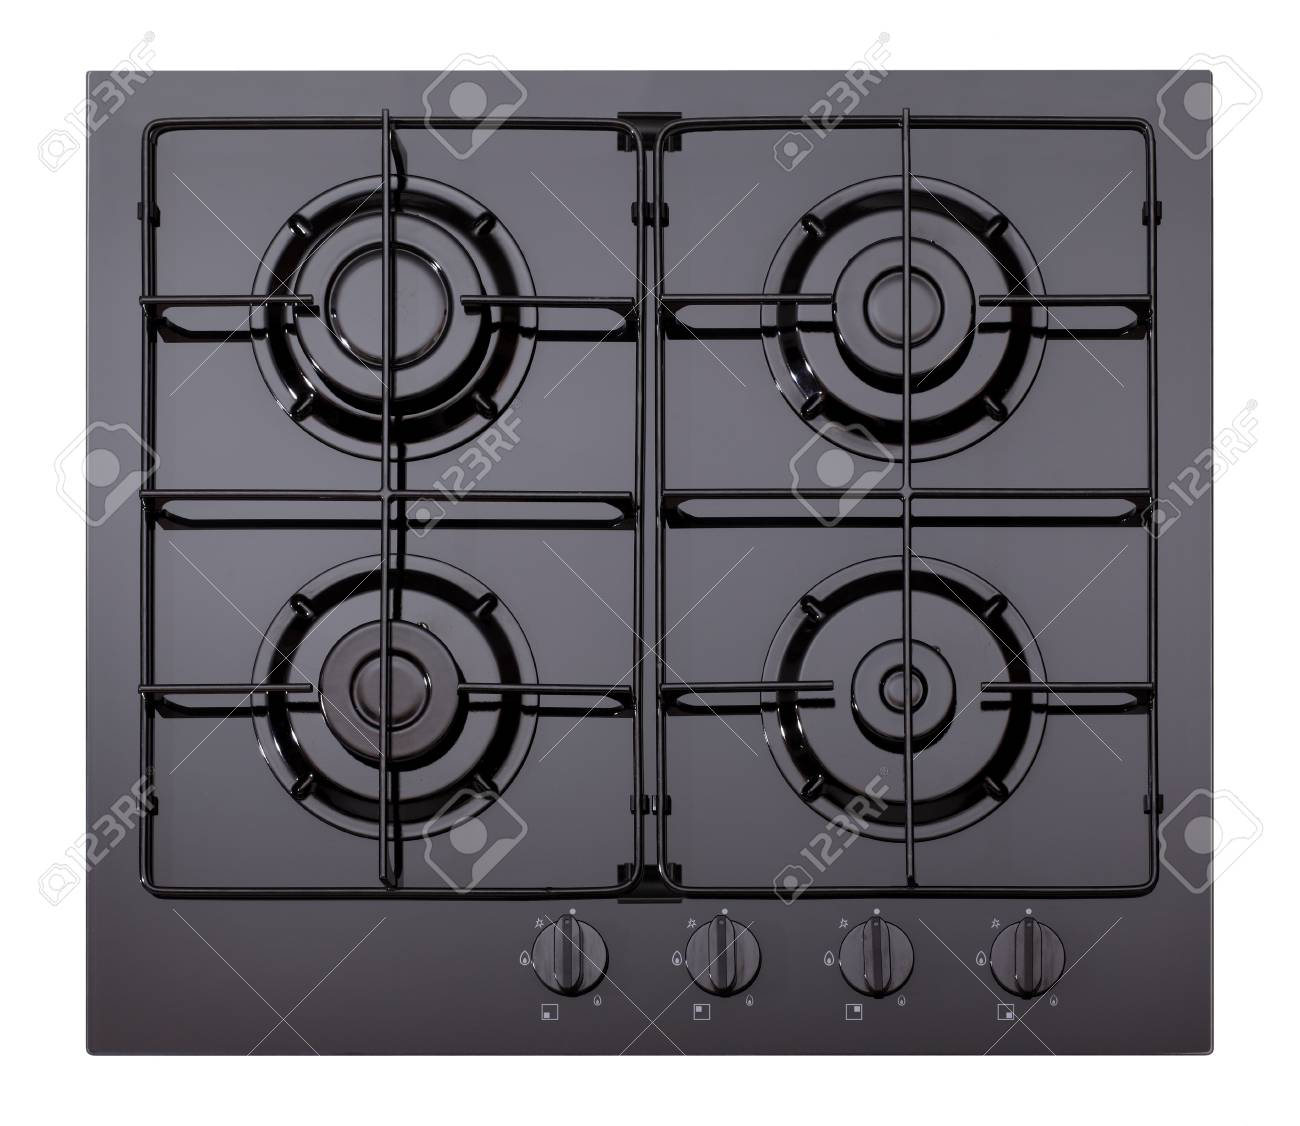 Black Glass Gas Hob Isolated On White Stock Photo, Picture And ...